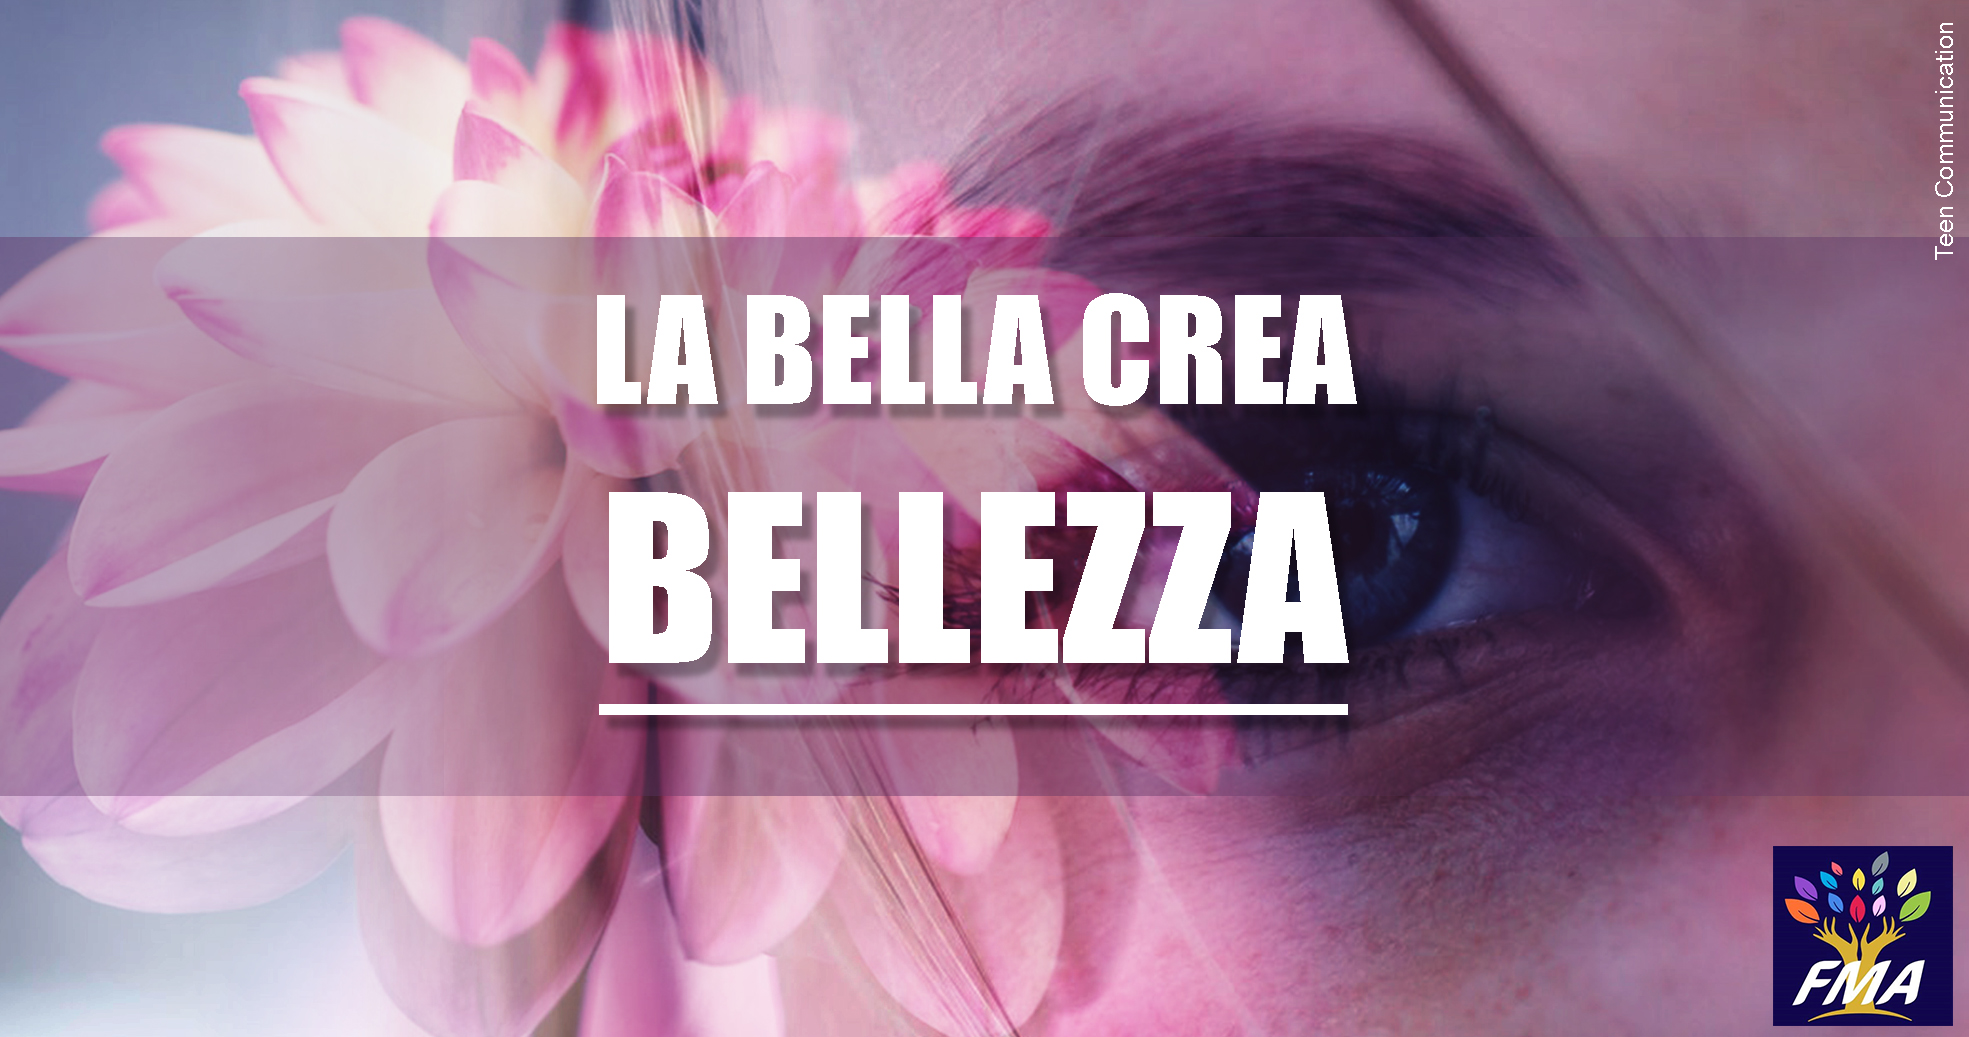 La Bella crea Bellezza